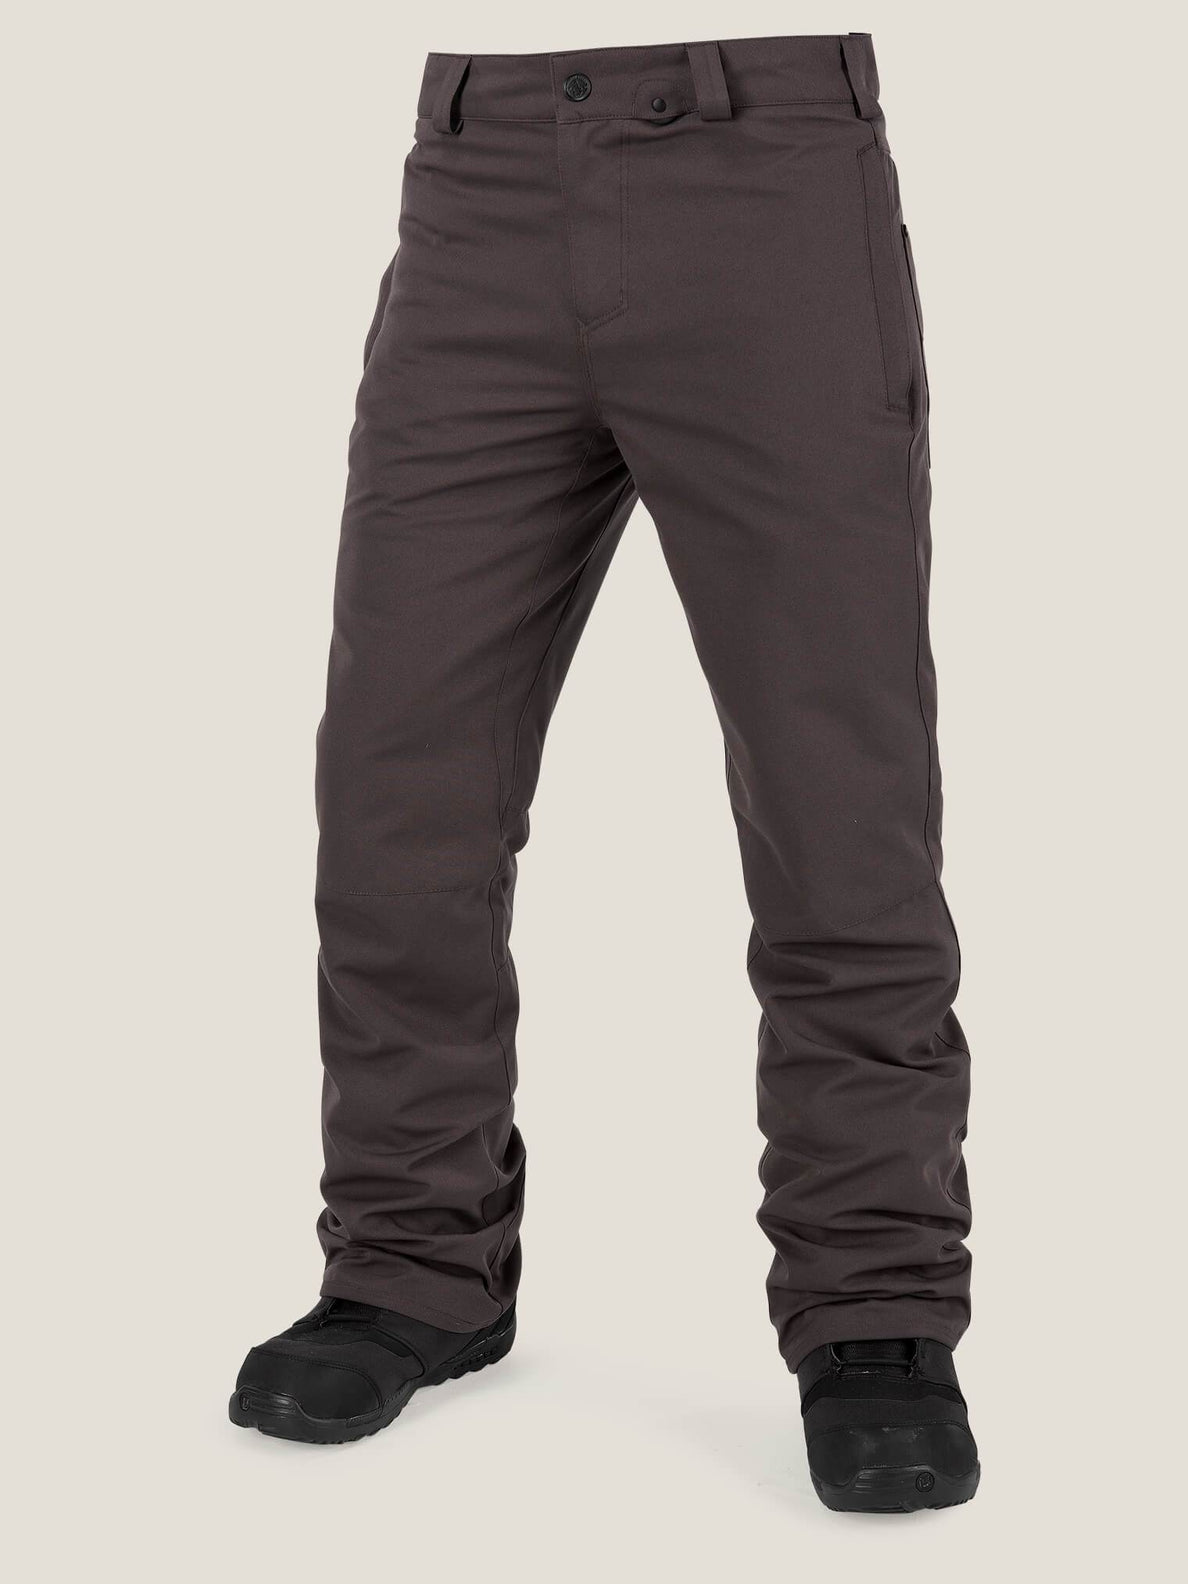 Klocker Tight Pant In Vintage Black, Front View